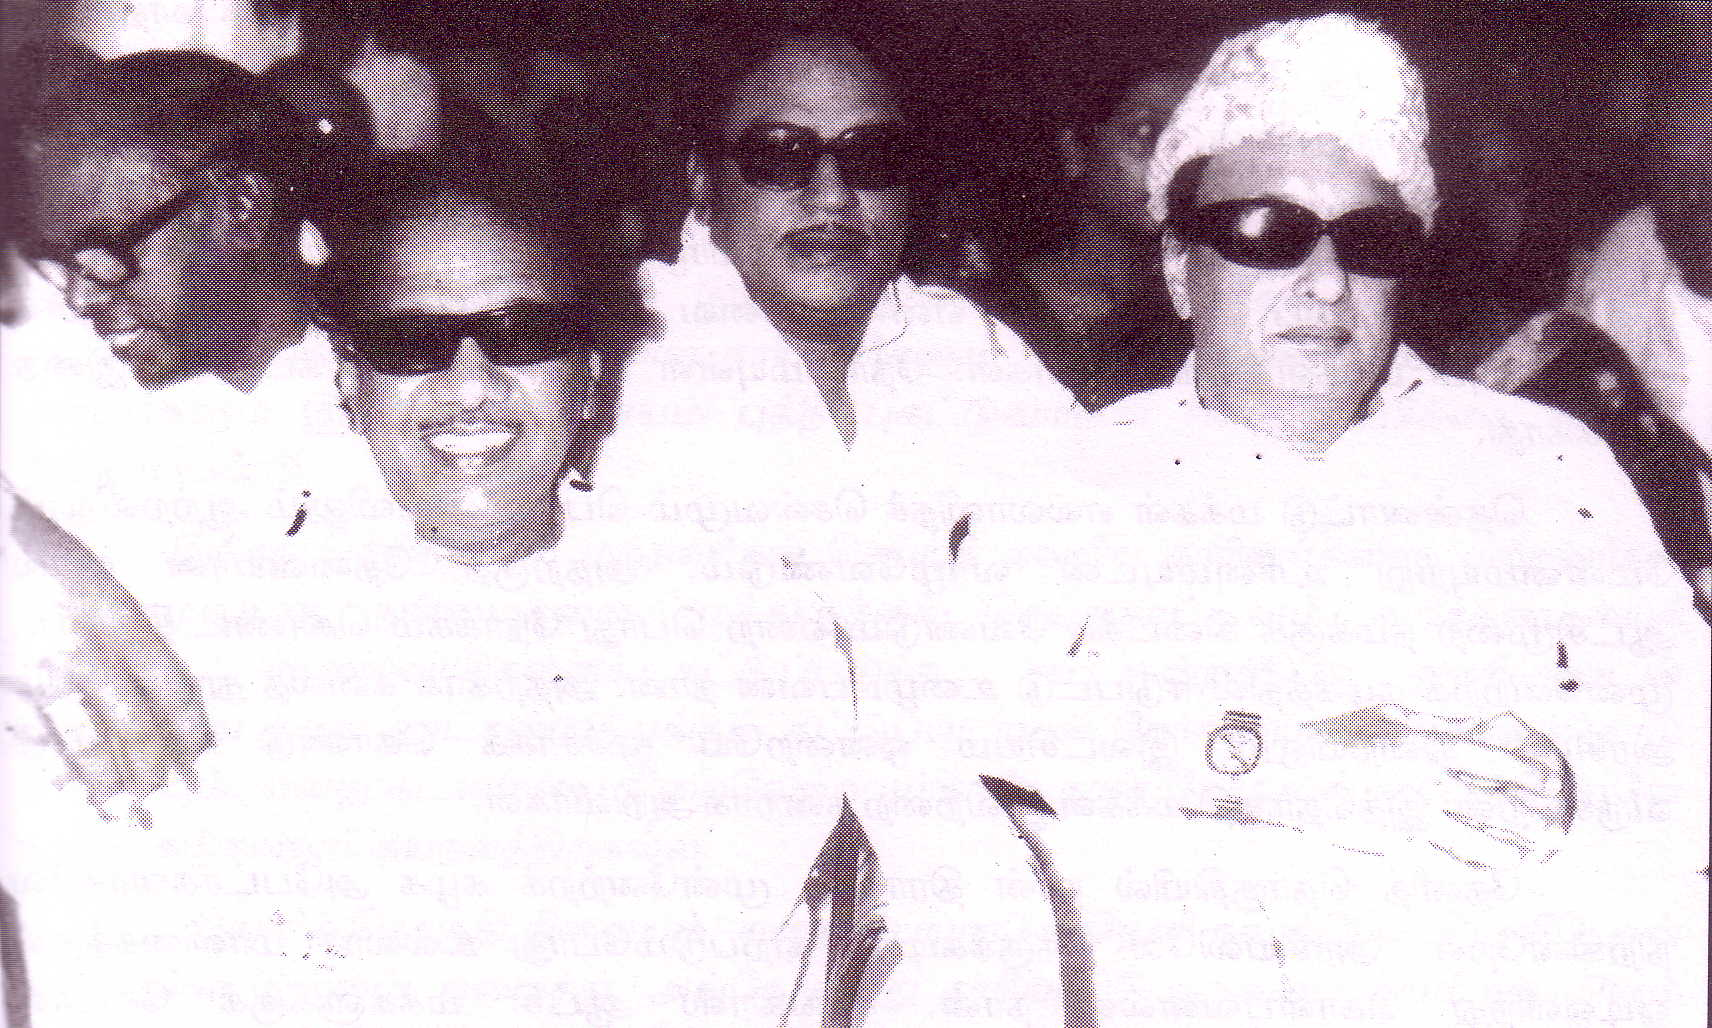 karunanidhi and mgr relationship